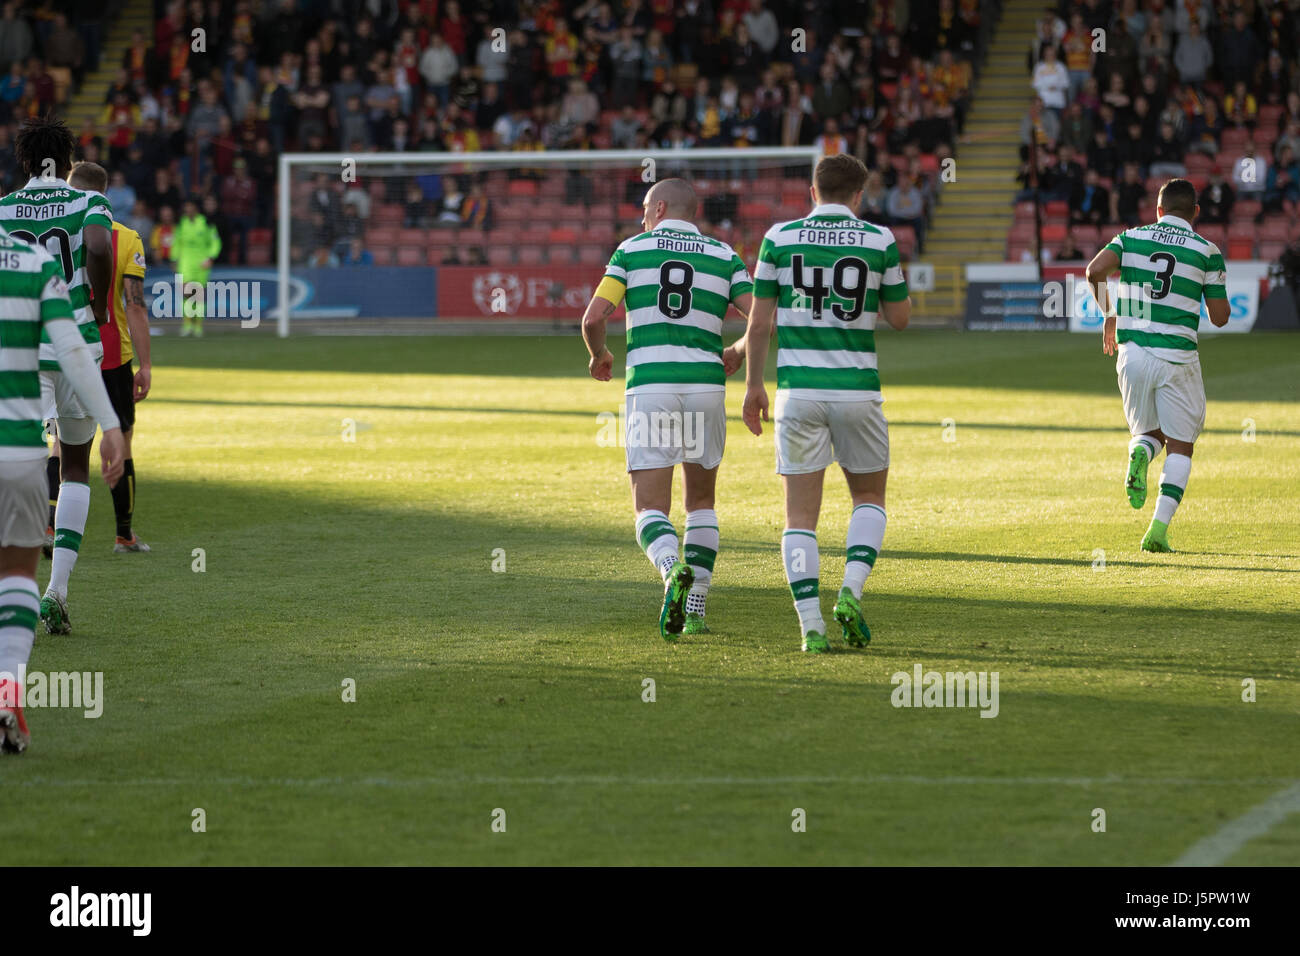 Glasgow, Scotland UK, 18 May 2017, Partick Thistle v Celtic, Firhill Stadium, SPFL Match 5-0. Scottish Premiership Stock Photo